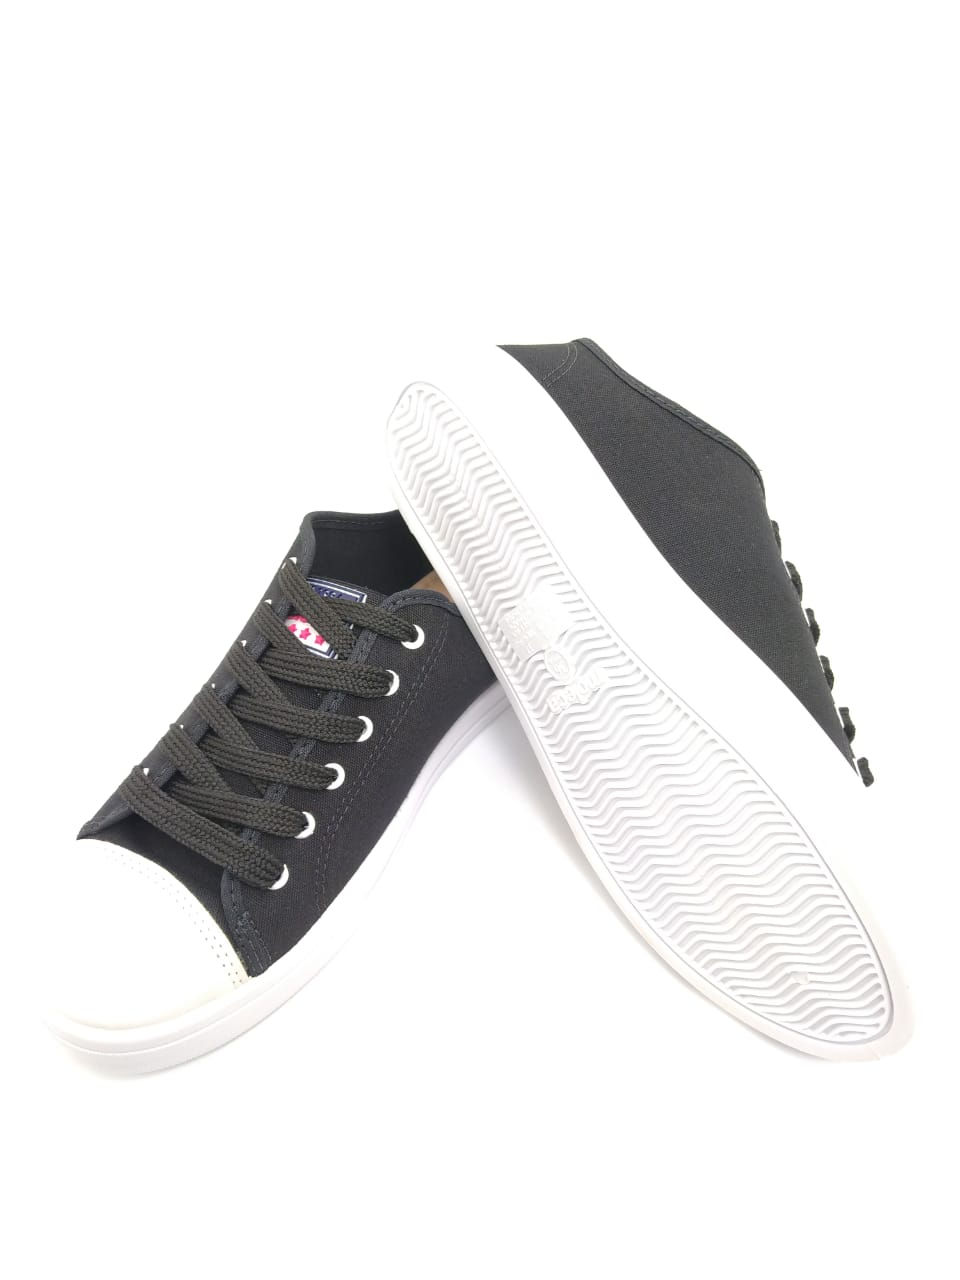 Tênis Moleca Preto Estilo All Star